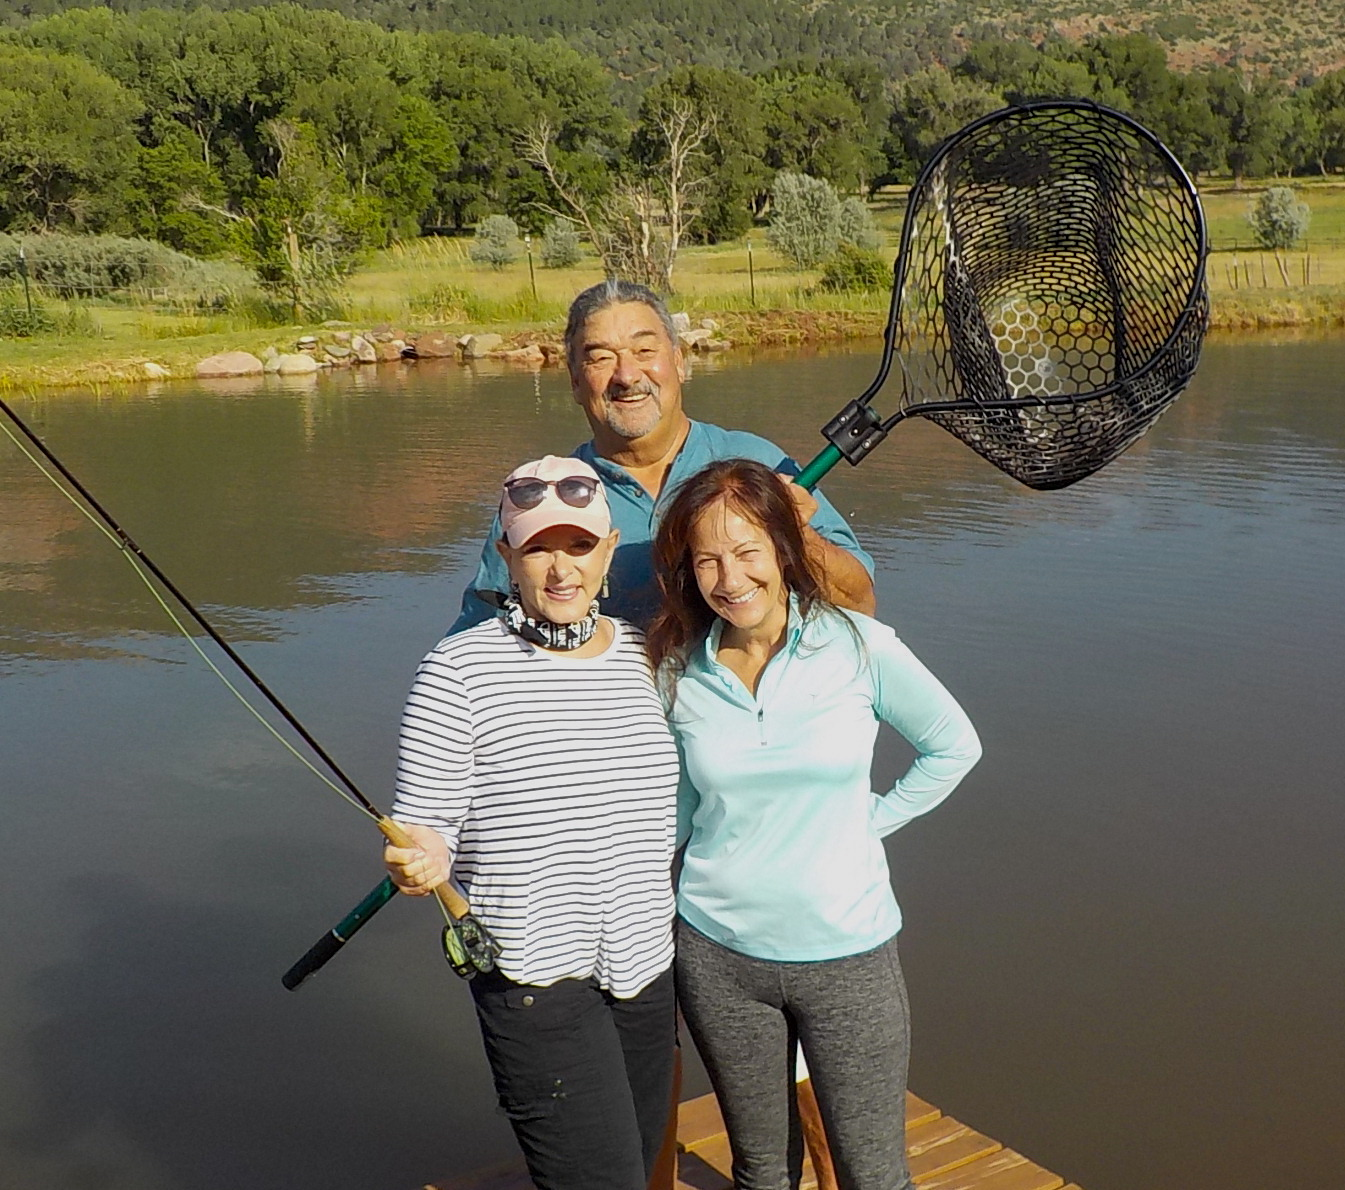 Joe and Susie Quintana, and Annie at the Q Ranch in Durango, CO.